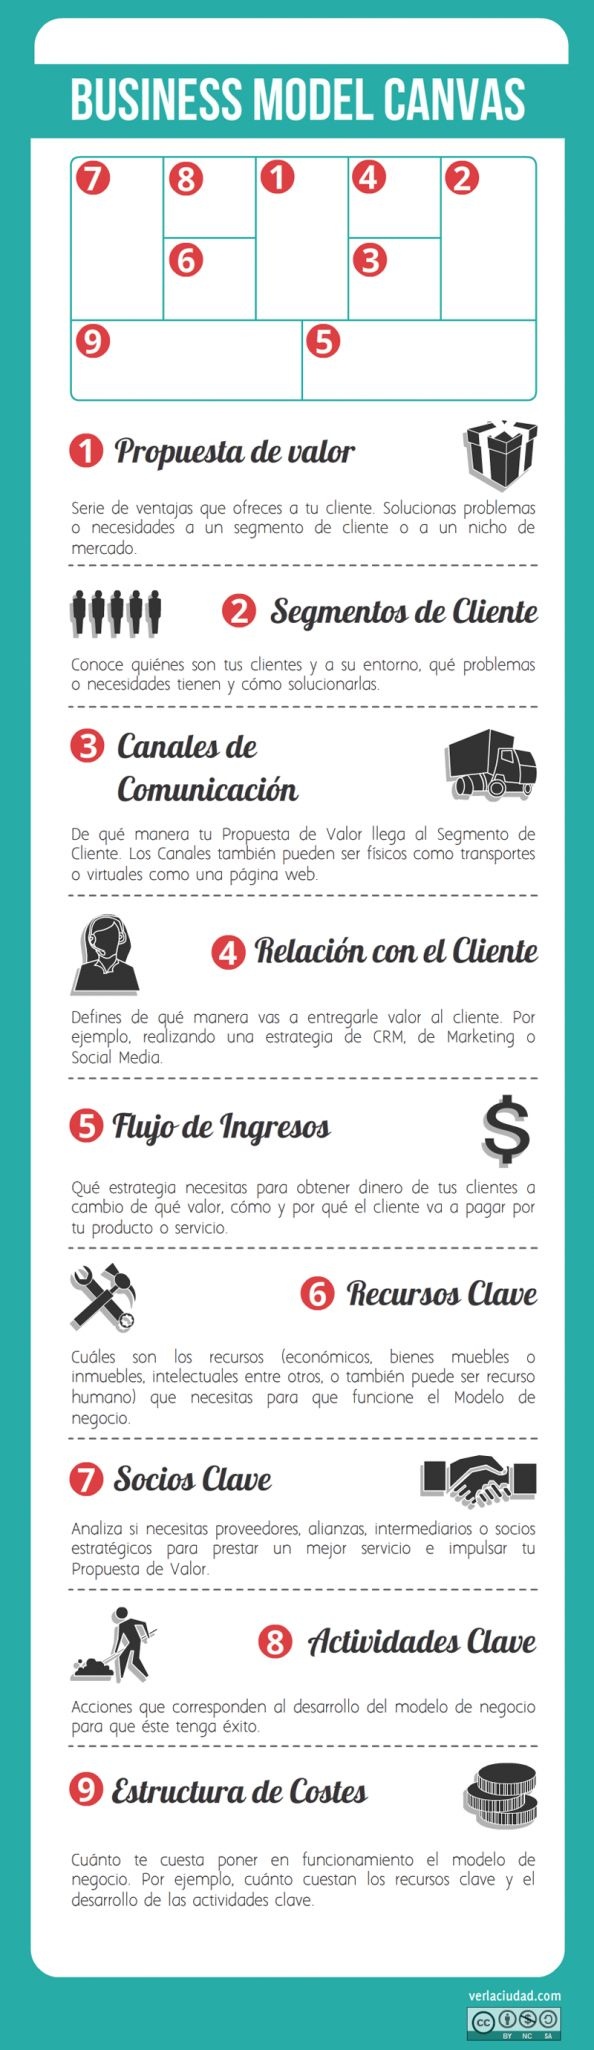 Business Model Canvas Infografía - Guía rápida